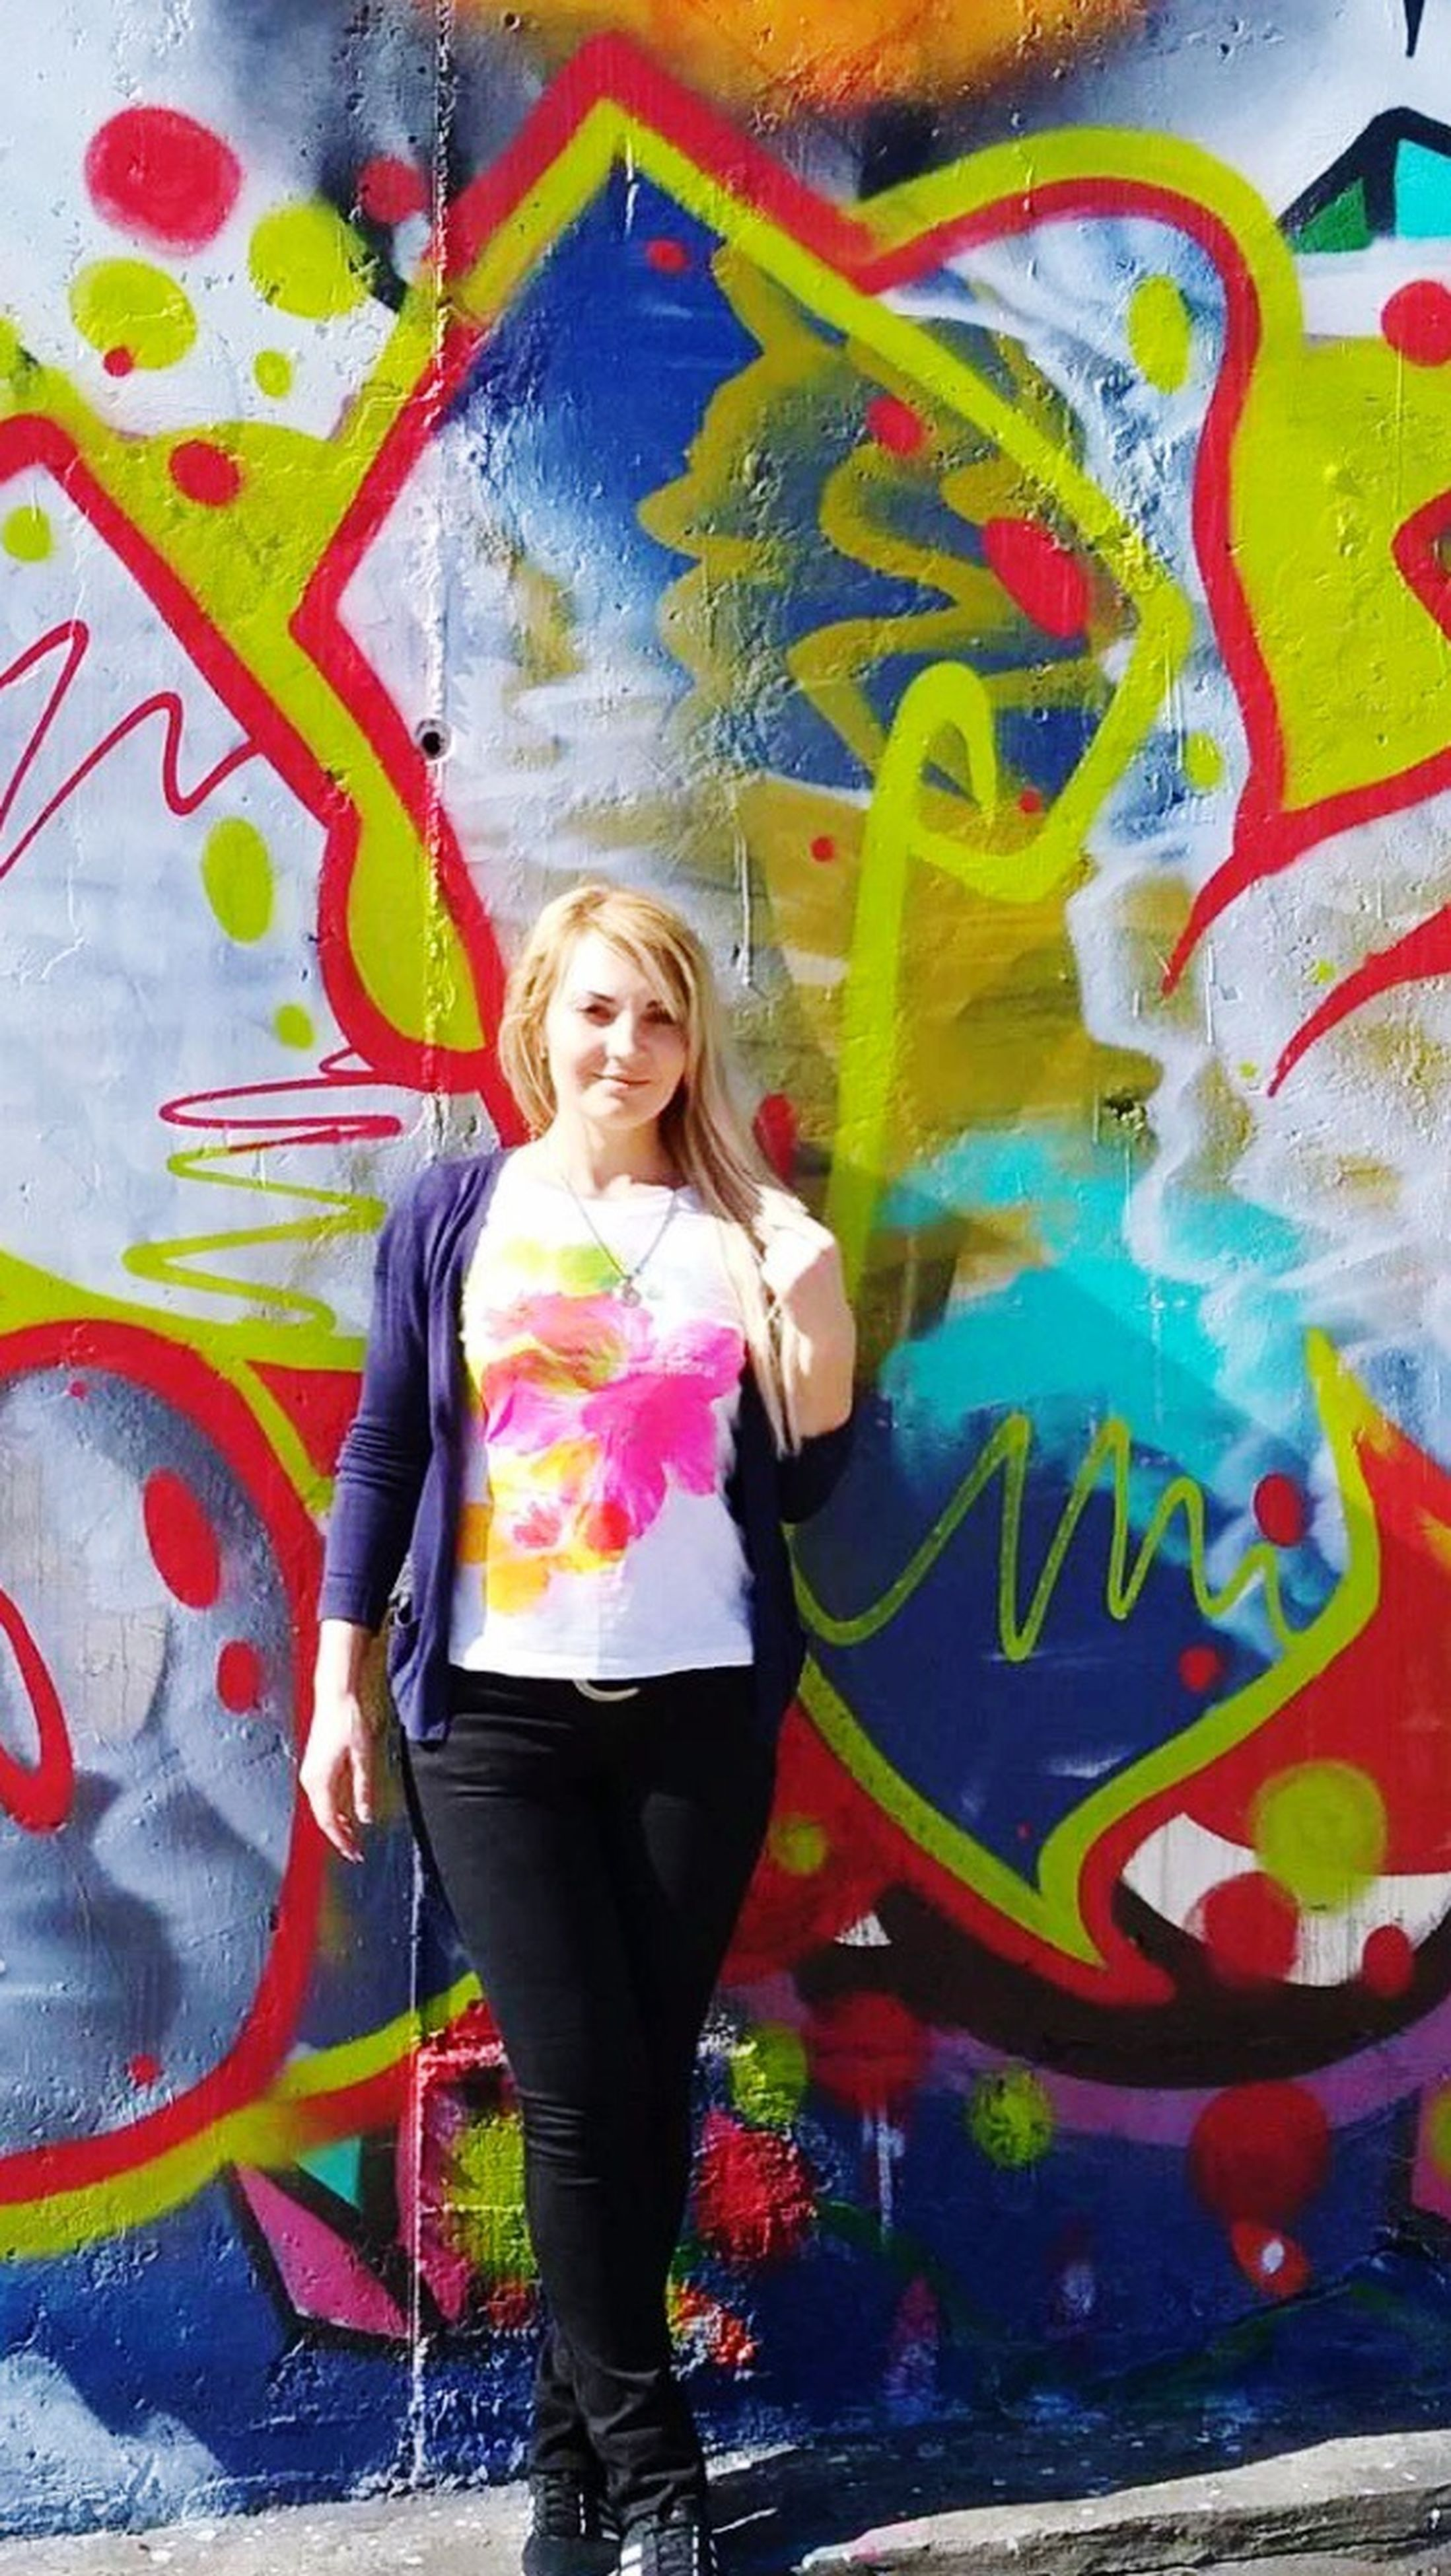 multi colored, graffiti, art, lifestyles, creativity, casual clothing, art and craft, wall - building feature, leisure activity, standing, front view, person, looking at camera, three quarter length, portrait, childhood, full length, smiling